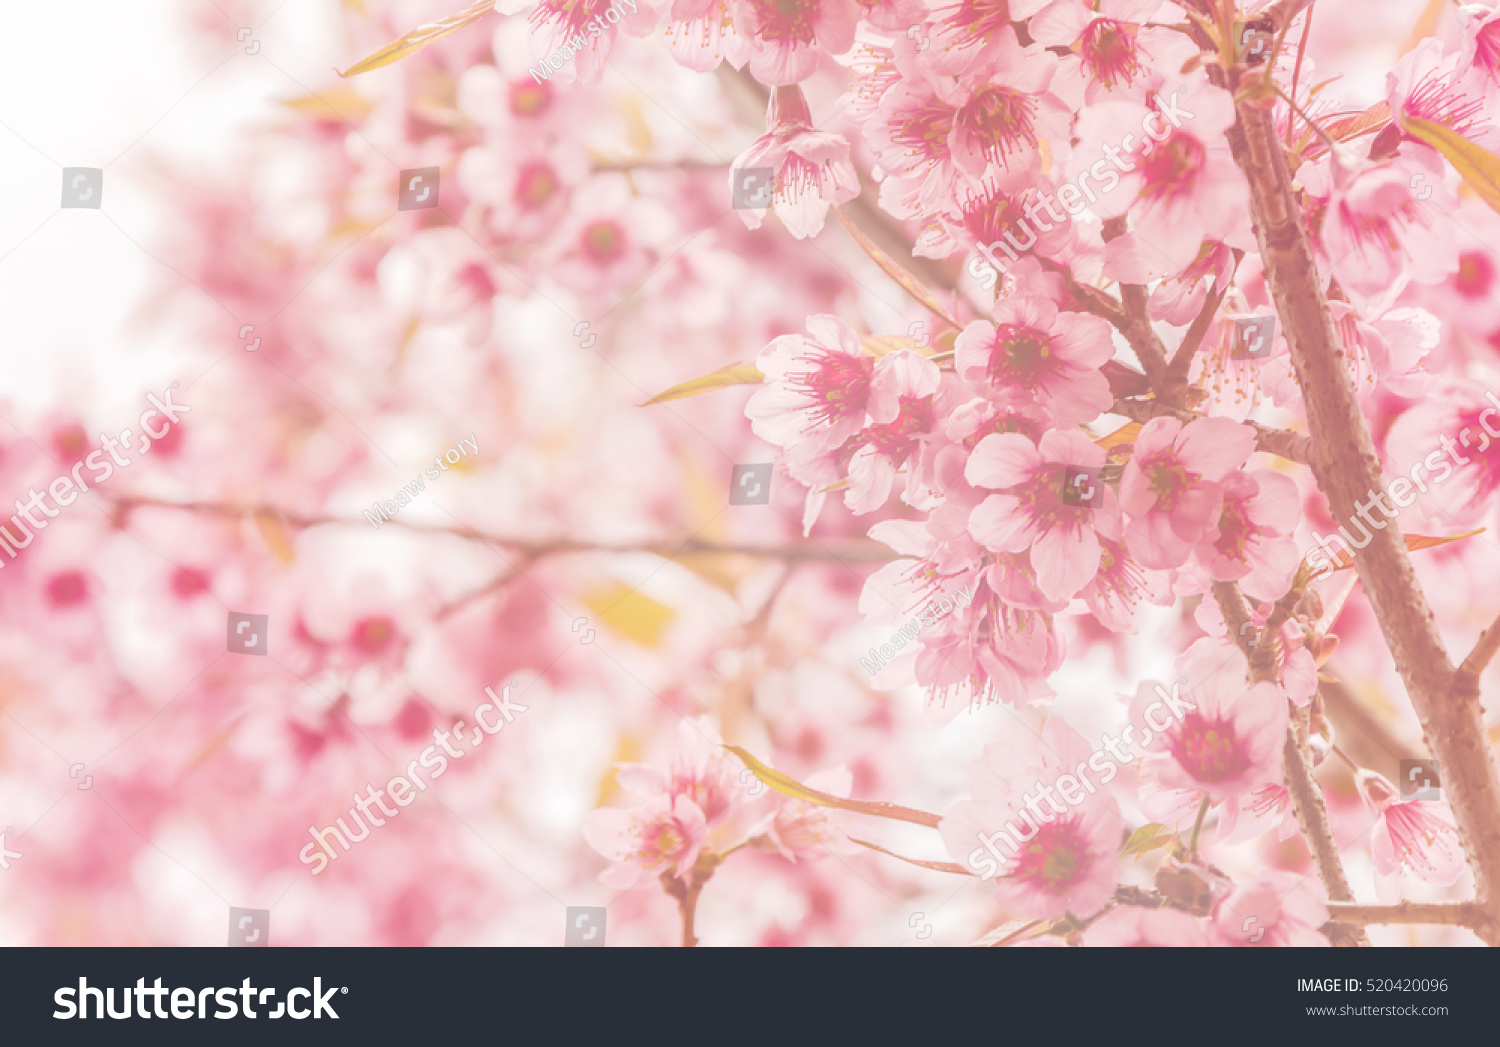 Beautiful soft blur pink flowers cherry stock photo 520420096 beautiful and soft blur of pink flowers cherry blossom or sakura flower with soft blur background dhlflorist Images